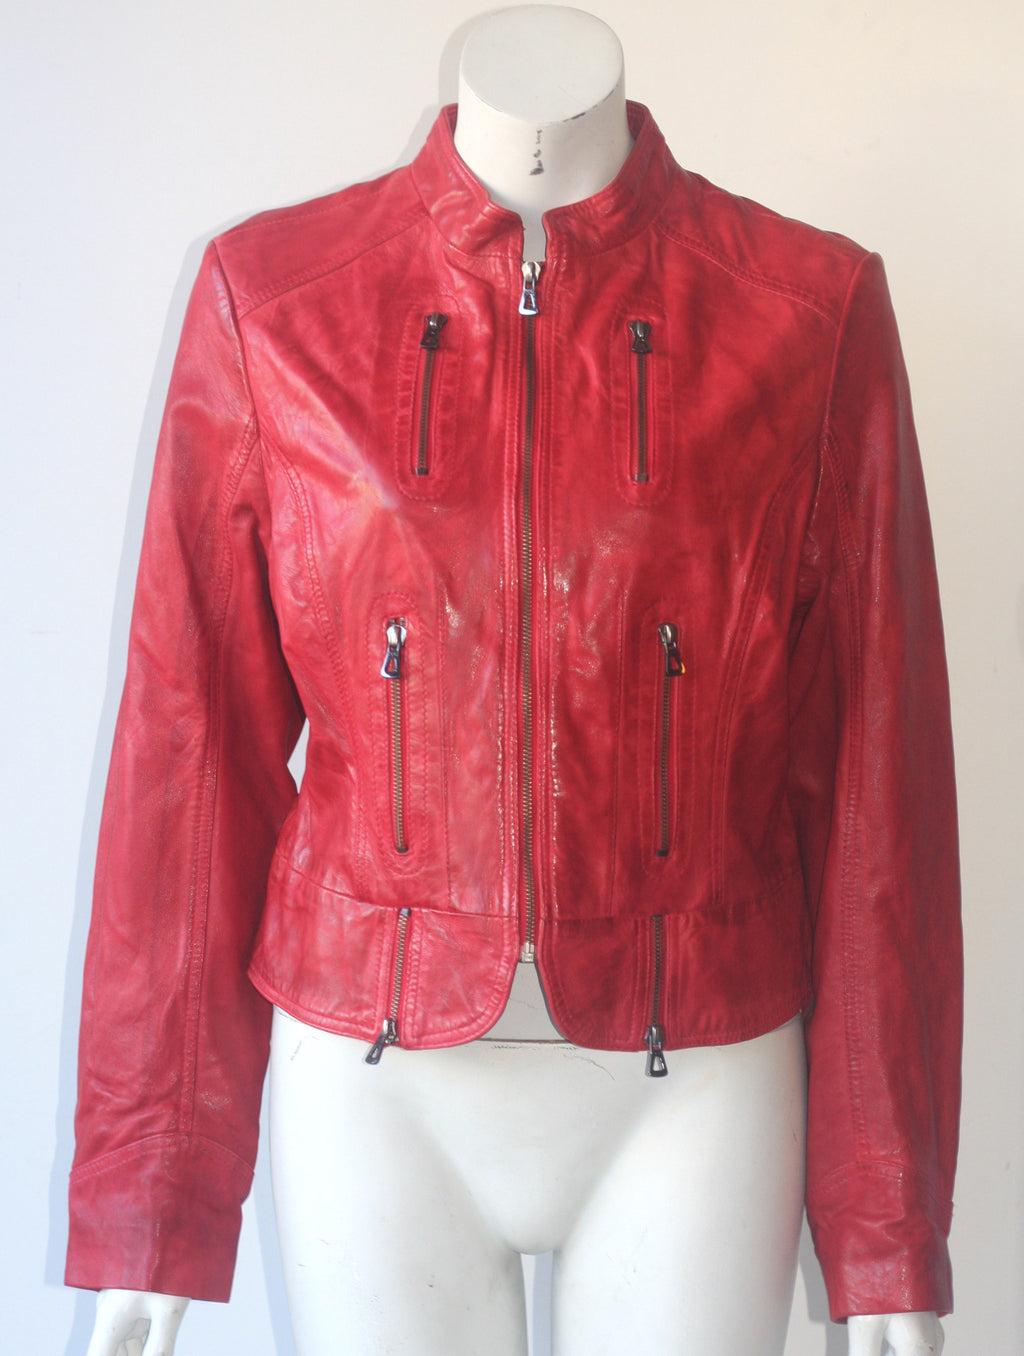 Bod Christensen Red Leather Motorcycle Jacket - Joyce's Closet  - 1